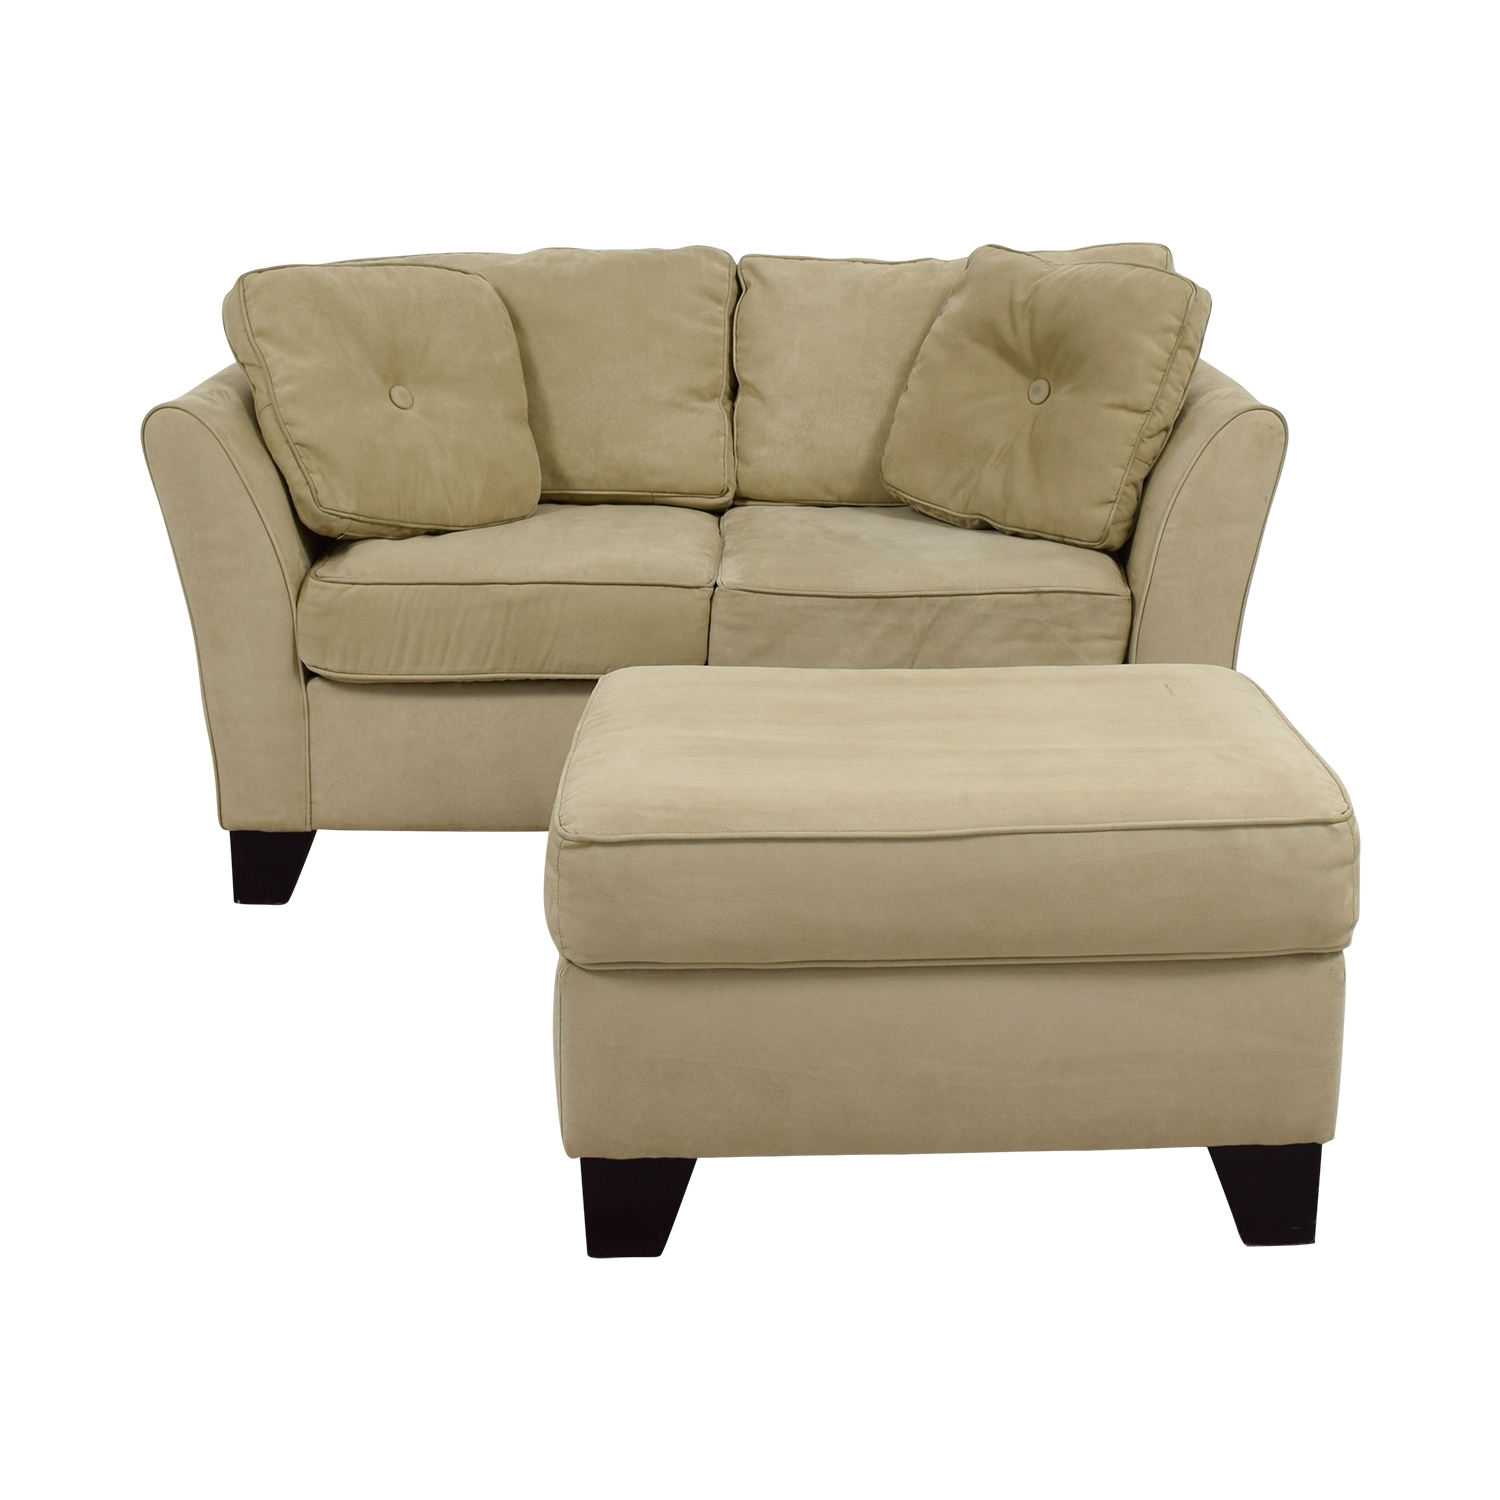 86% Off – Macy's Macy's Tan Loveseat With Ottoman / Sofas Inside Loveseats With Ottoman (View 2 of 10)